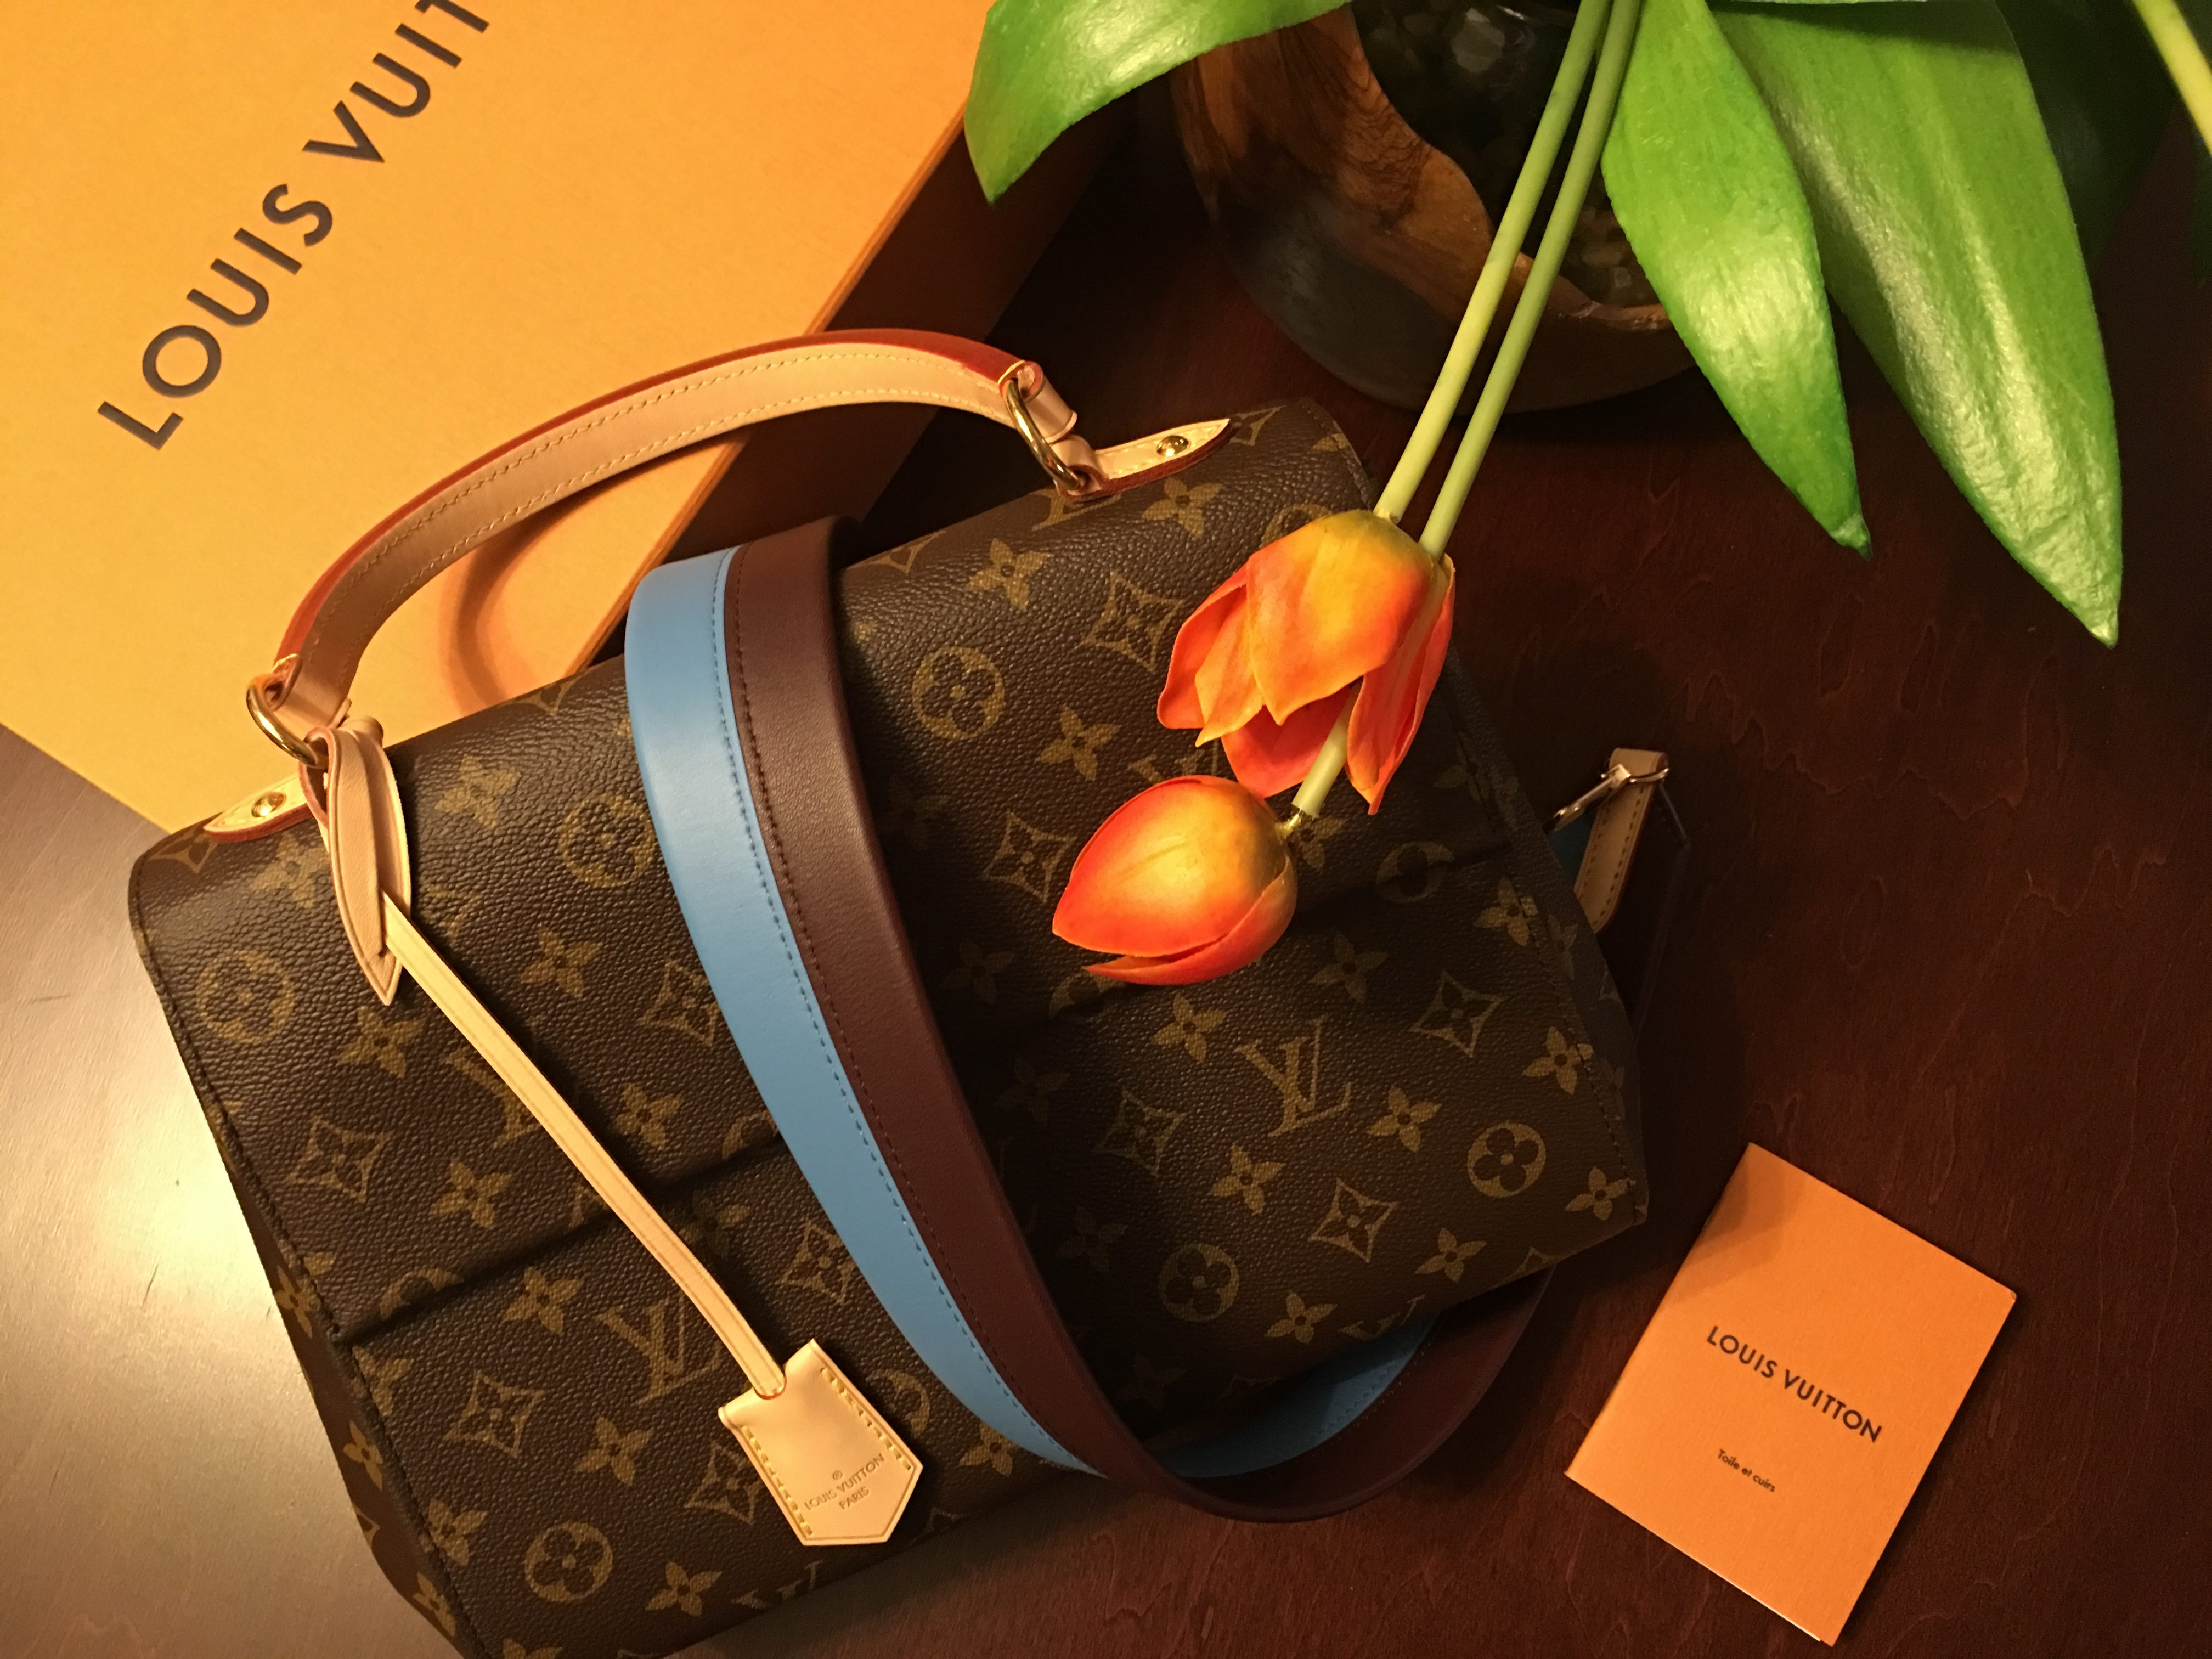 Louis Vuitton handbag with box and paper work